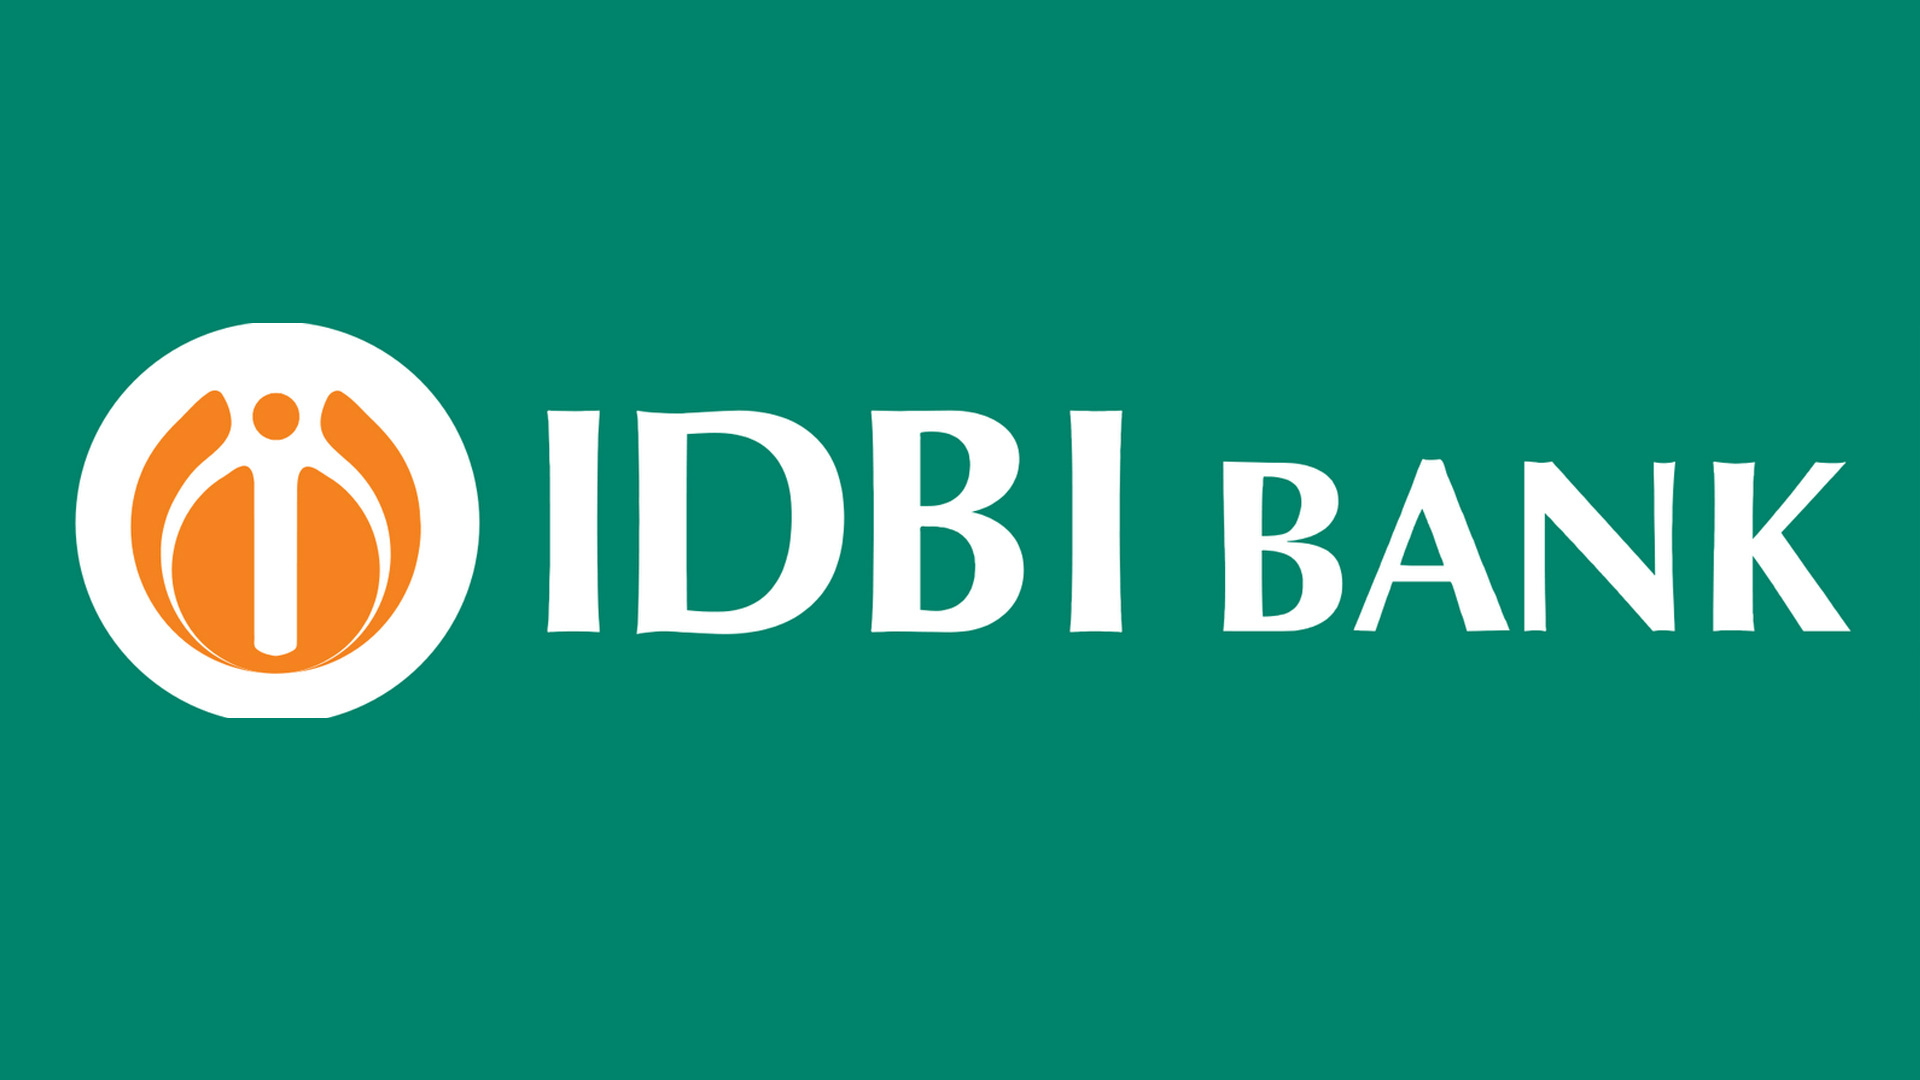 Best Bank in India - IDBI Bank